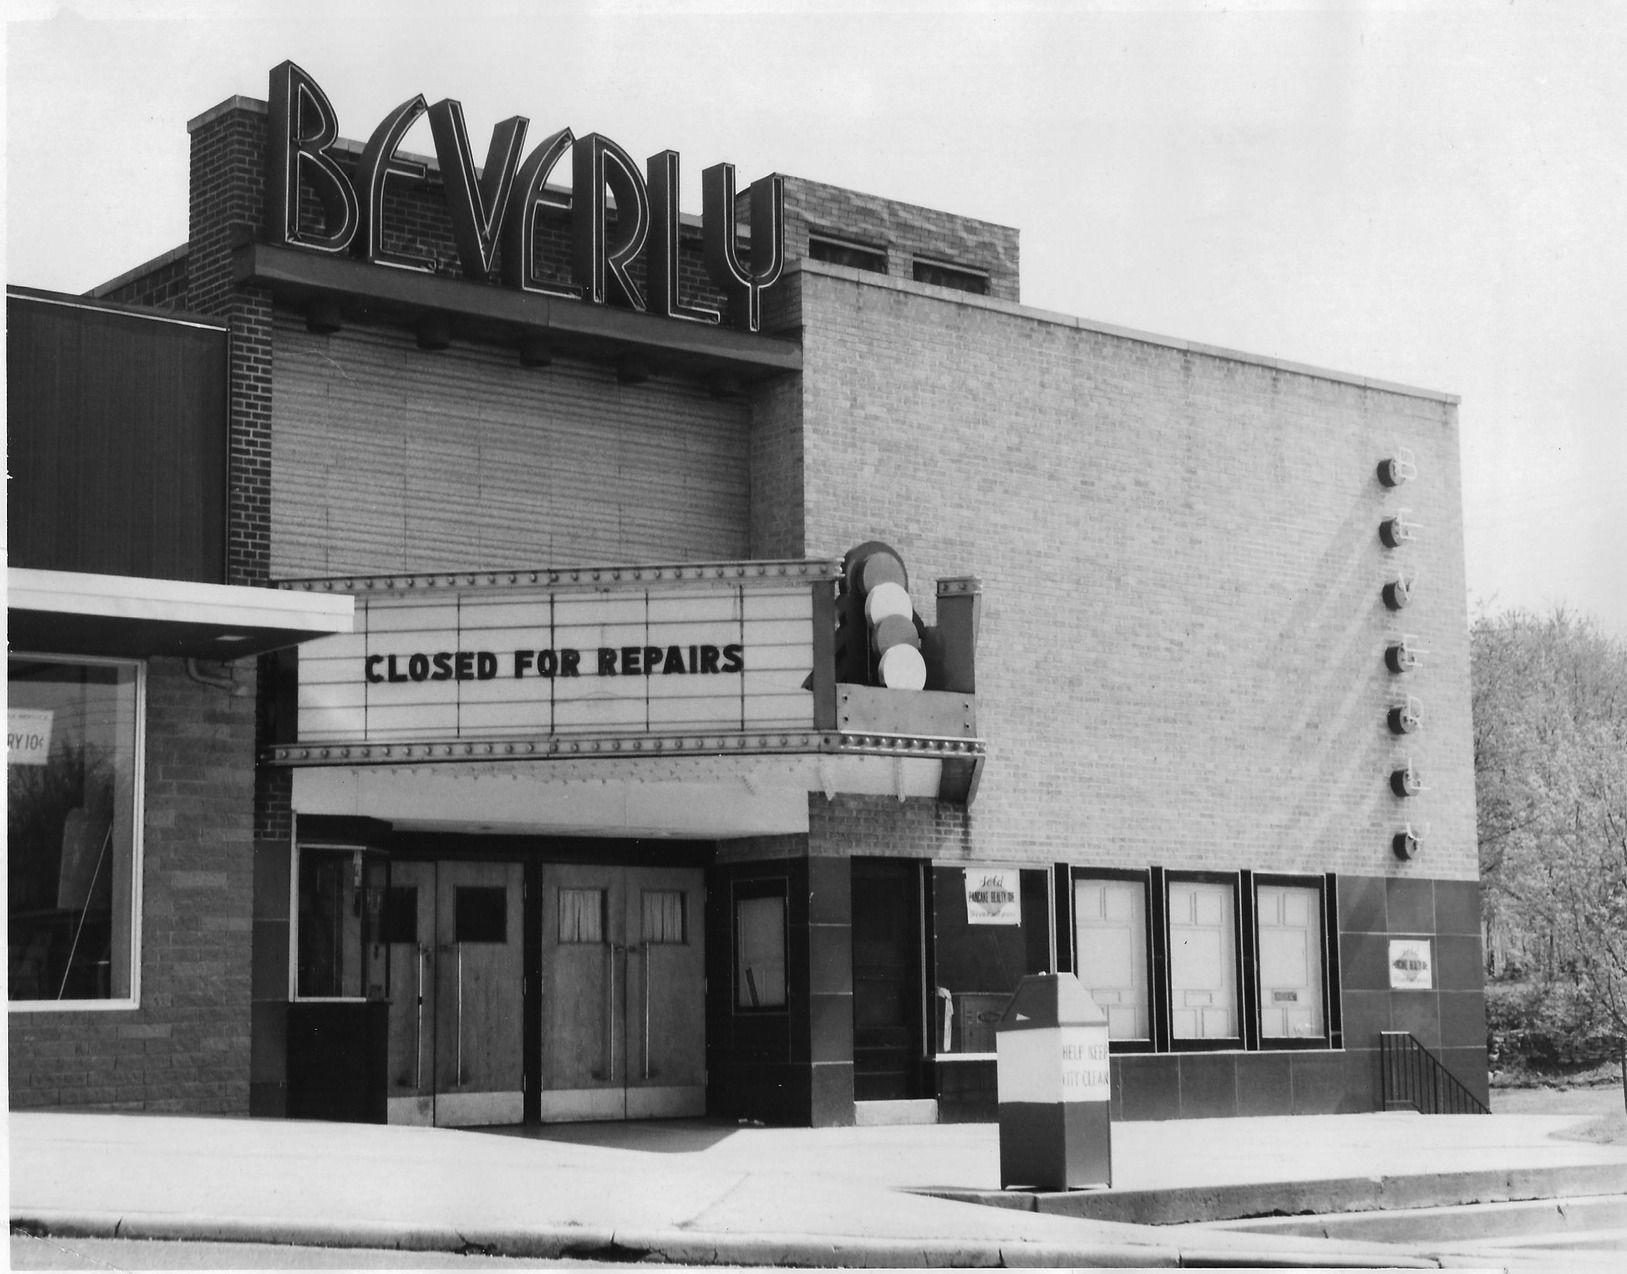 The Beverly Theater, pictured in 1963